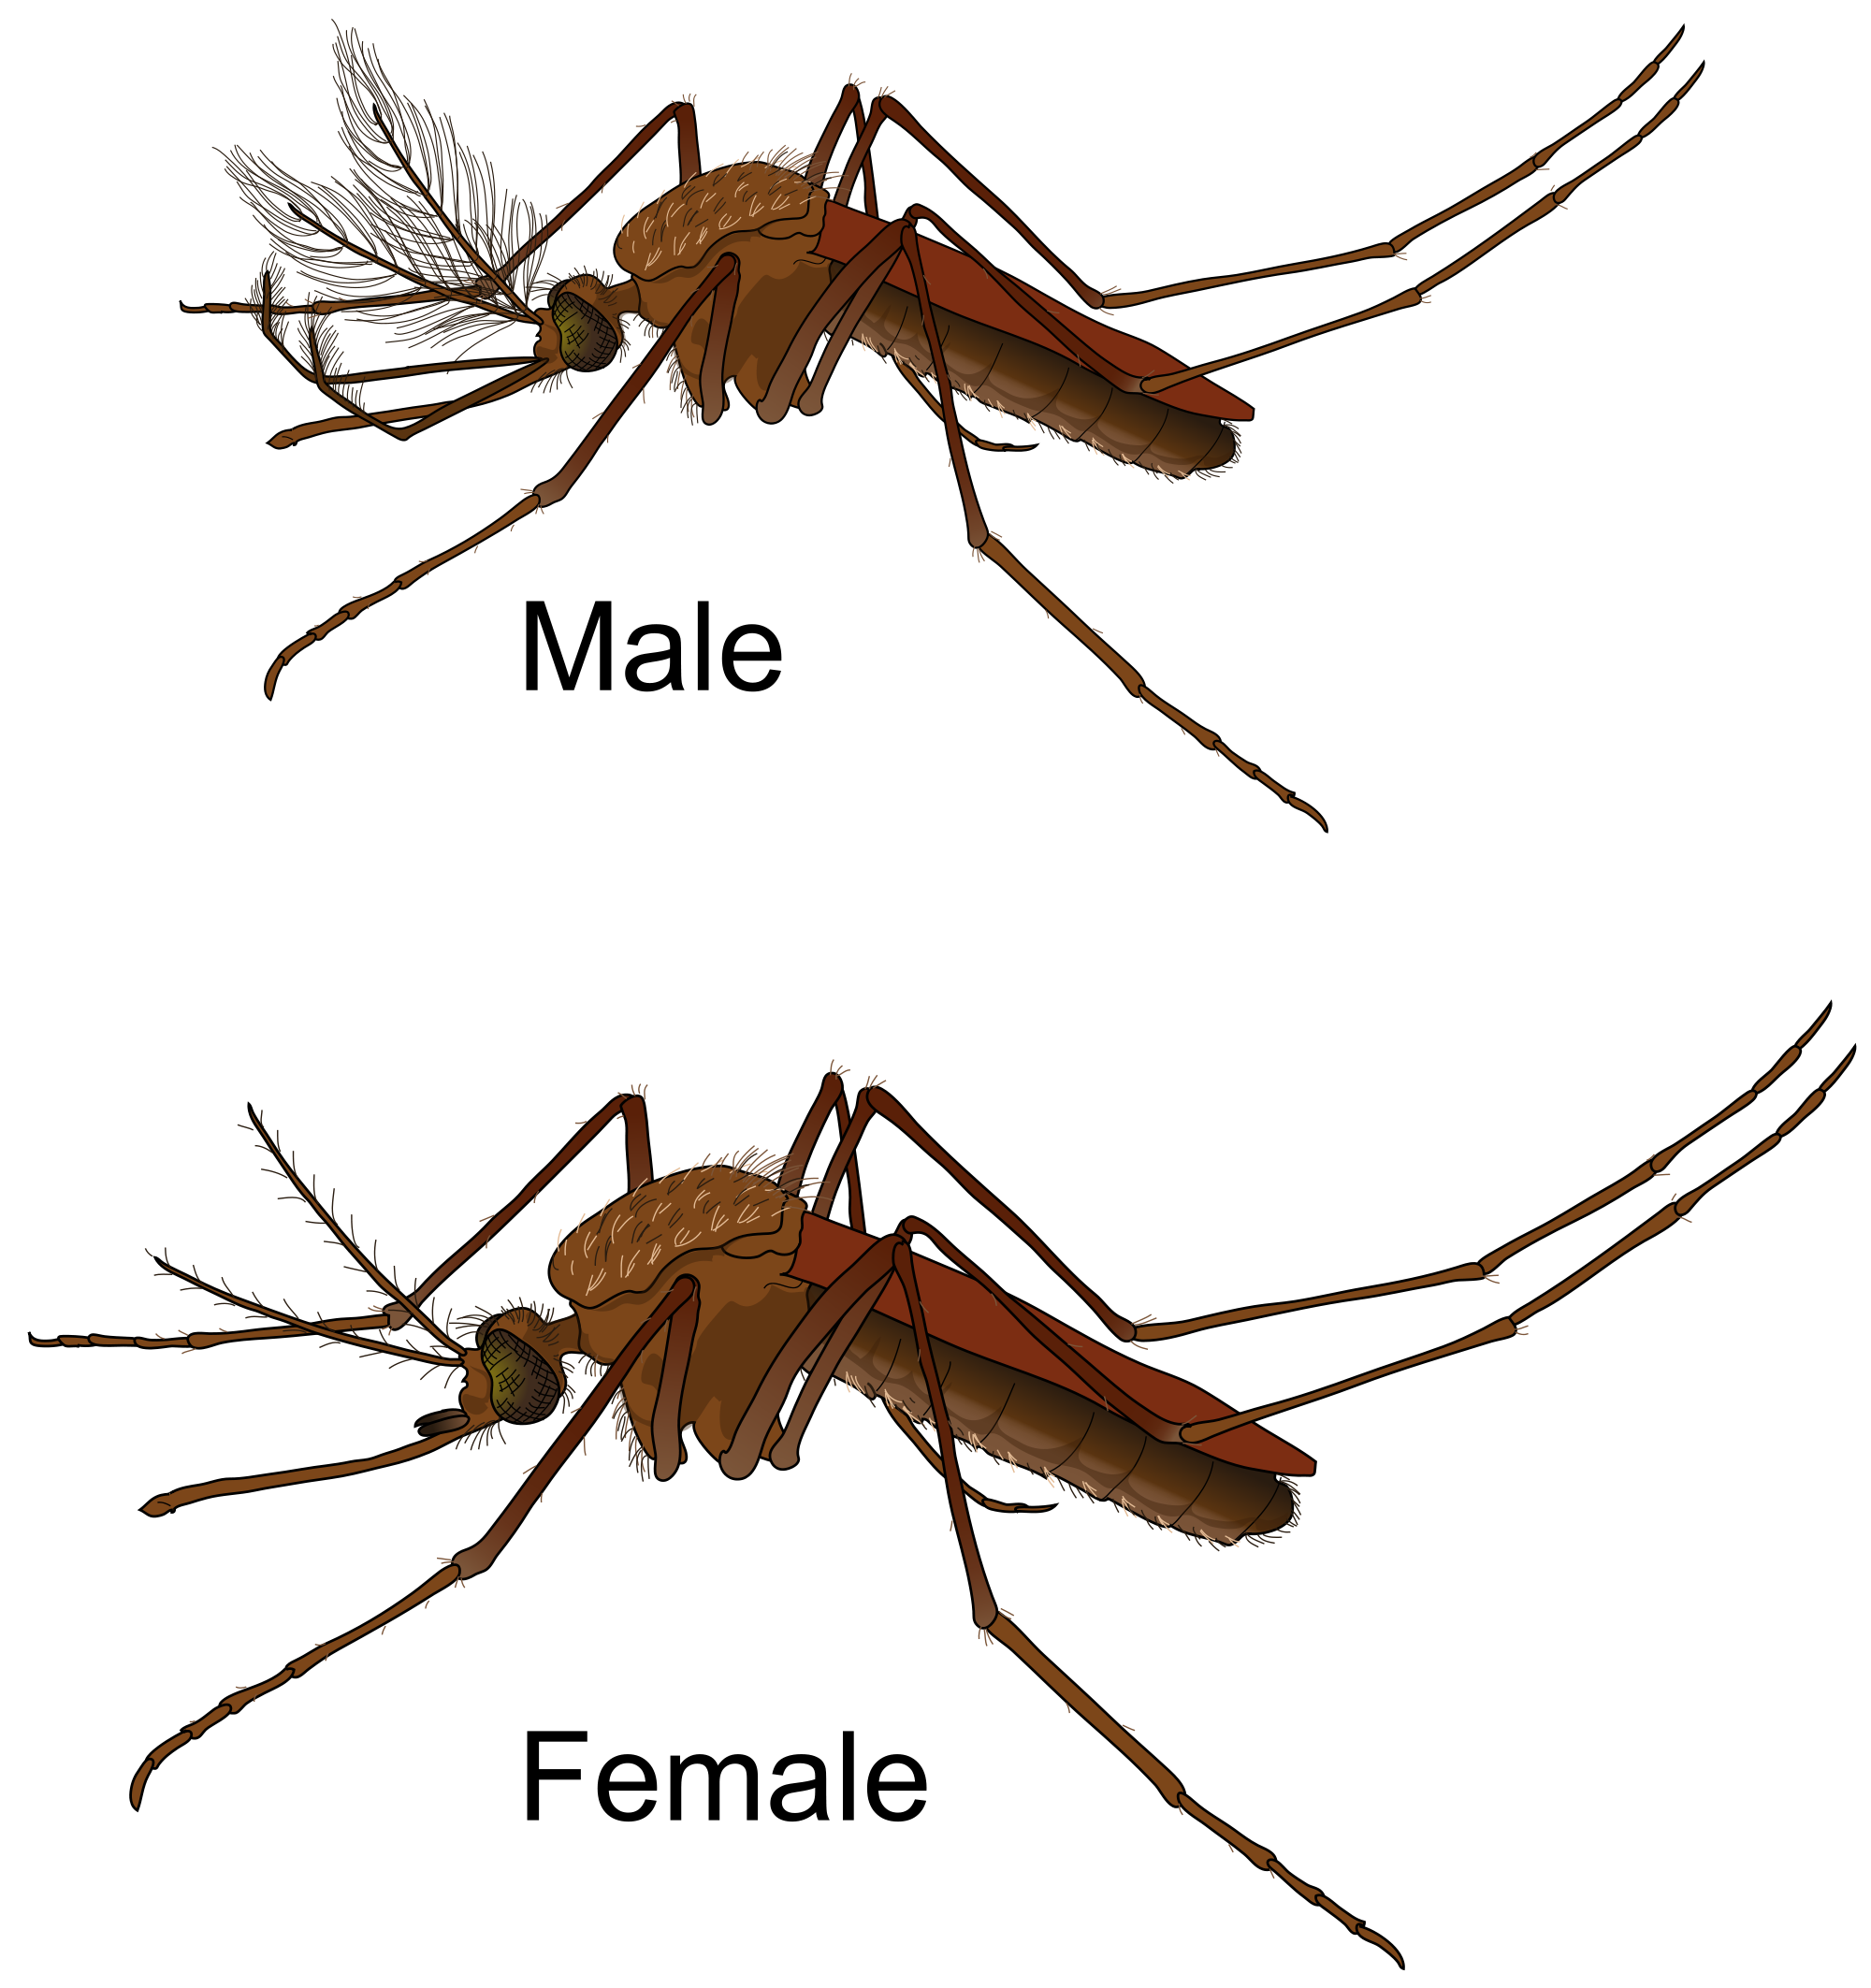 Males vs females we. Mosquito clipart outline